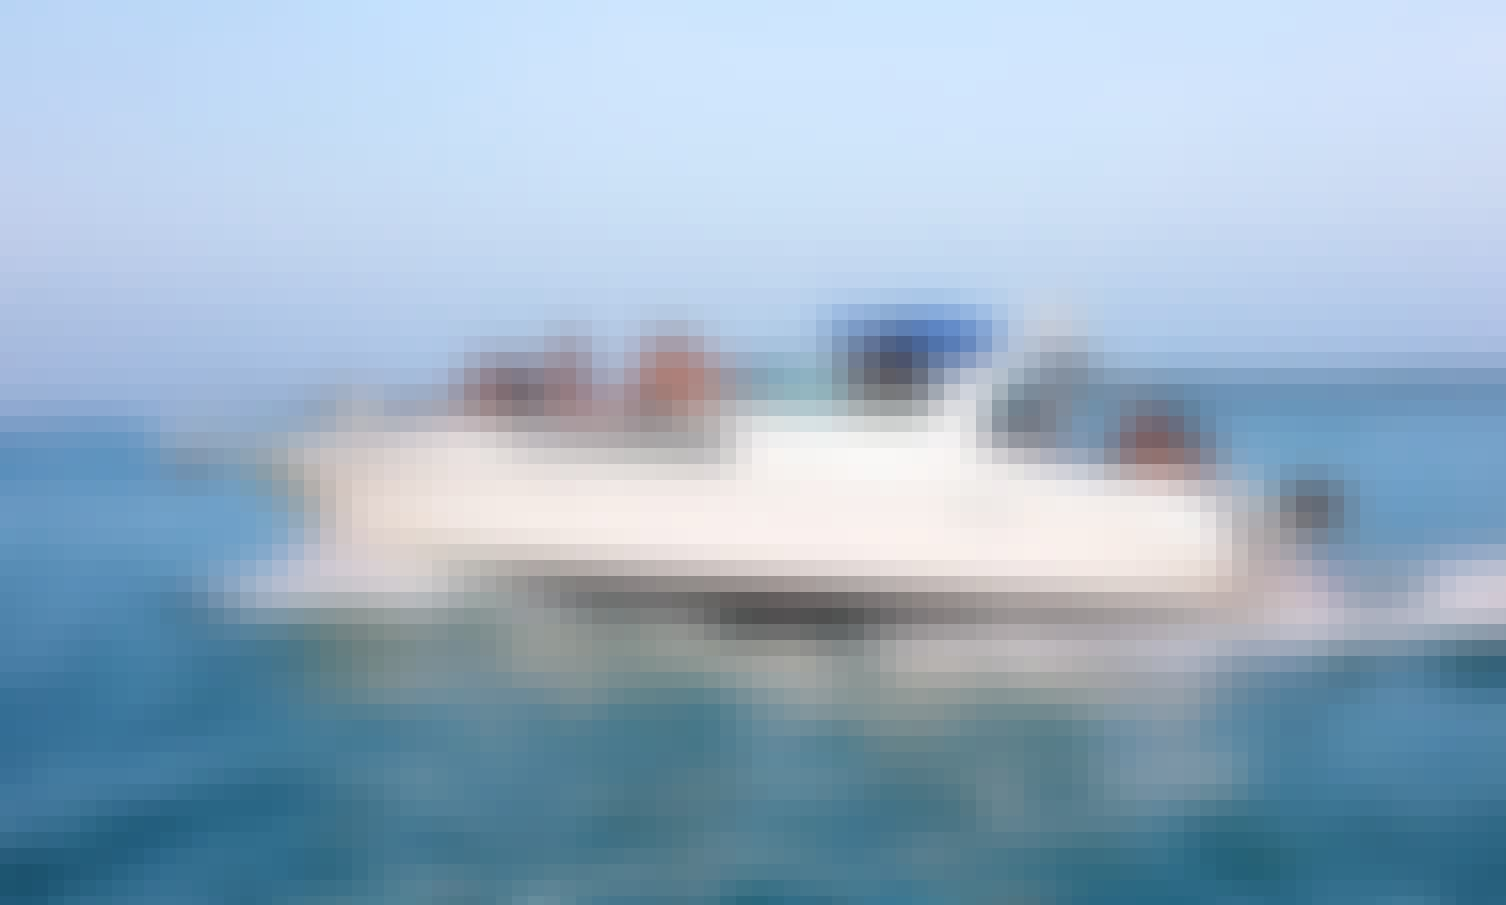 44' Sea Ray Motor Yacht for 15 People in Palm Beach, Florida - Only $250 per hour!